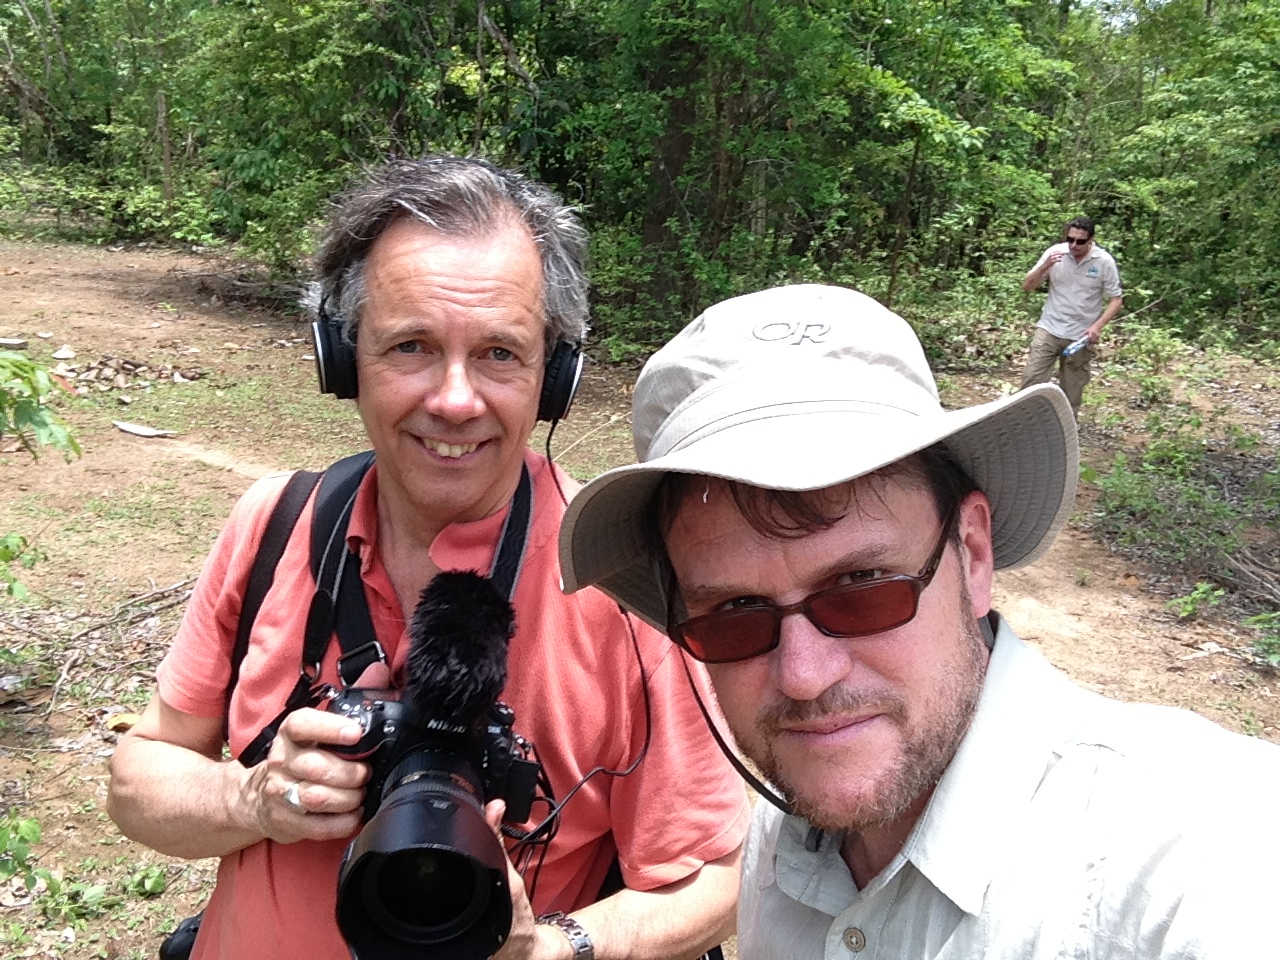 Canadian Press photographer Paul Chiasson and Mike Blanchfield coming out of the jungle in southern Laos after accompanying deminers. Photo: Mike Blanchfield.